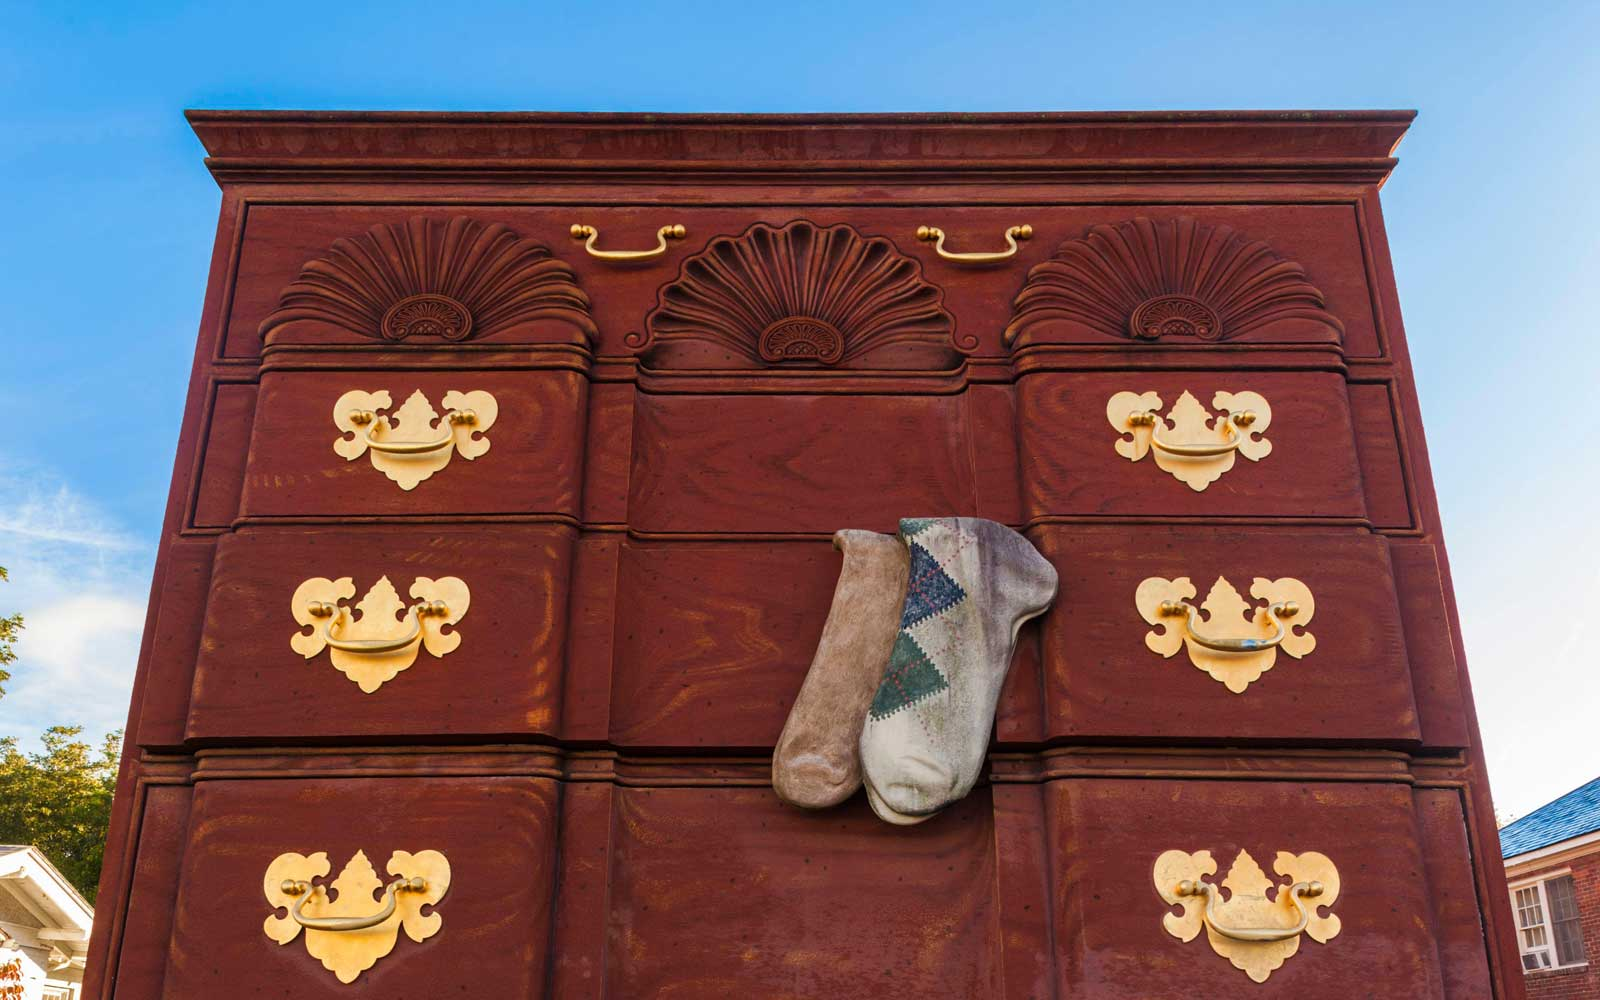 North Carolina, High Point, Furniture Capital of the United States, world's largest chest of drawers